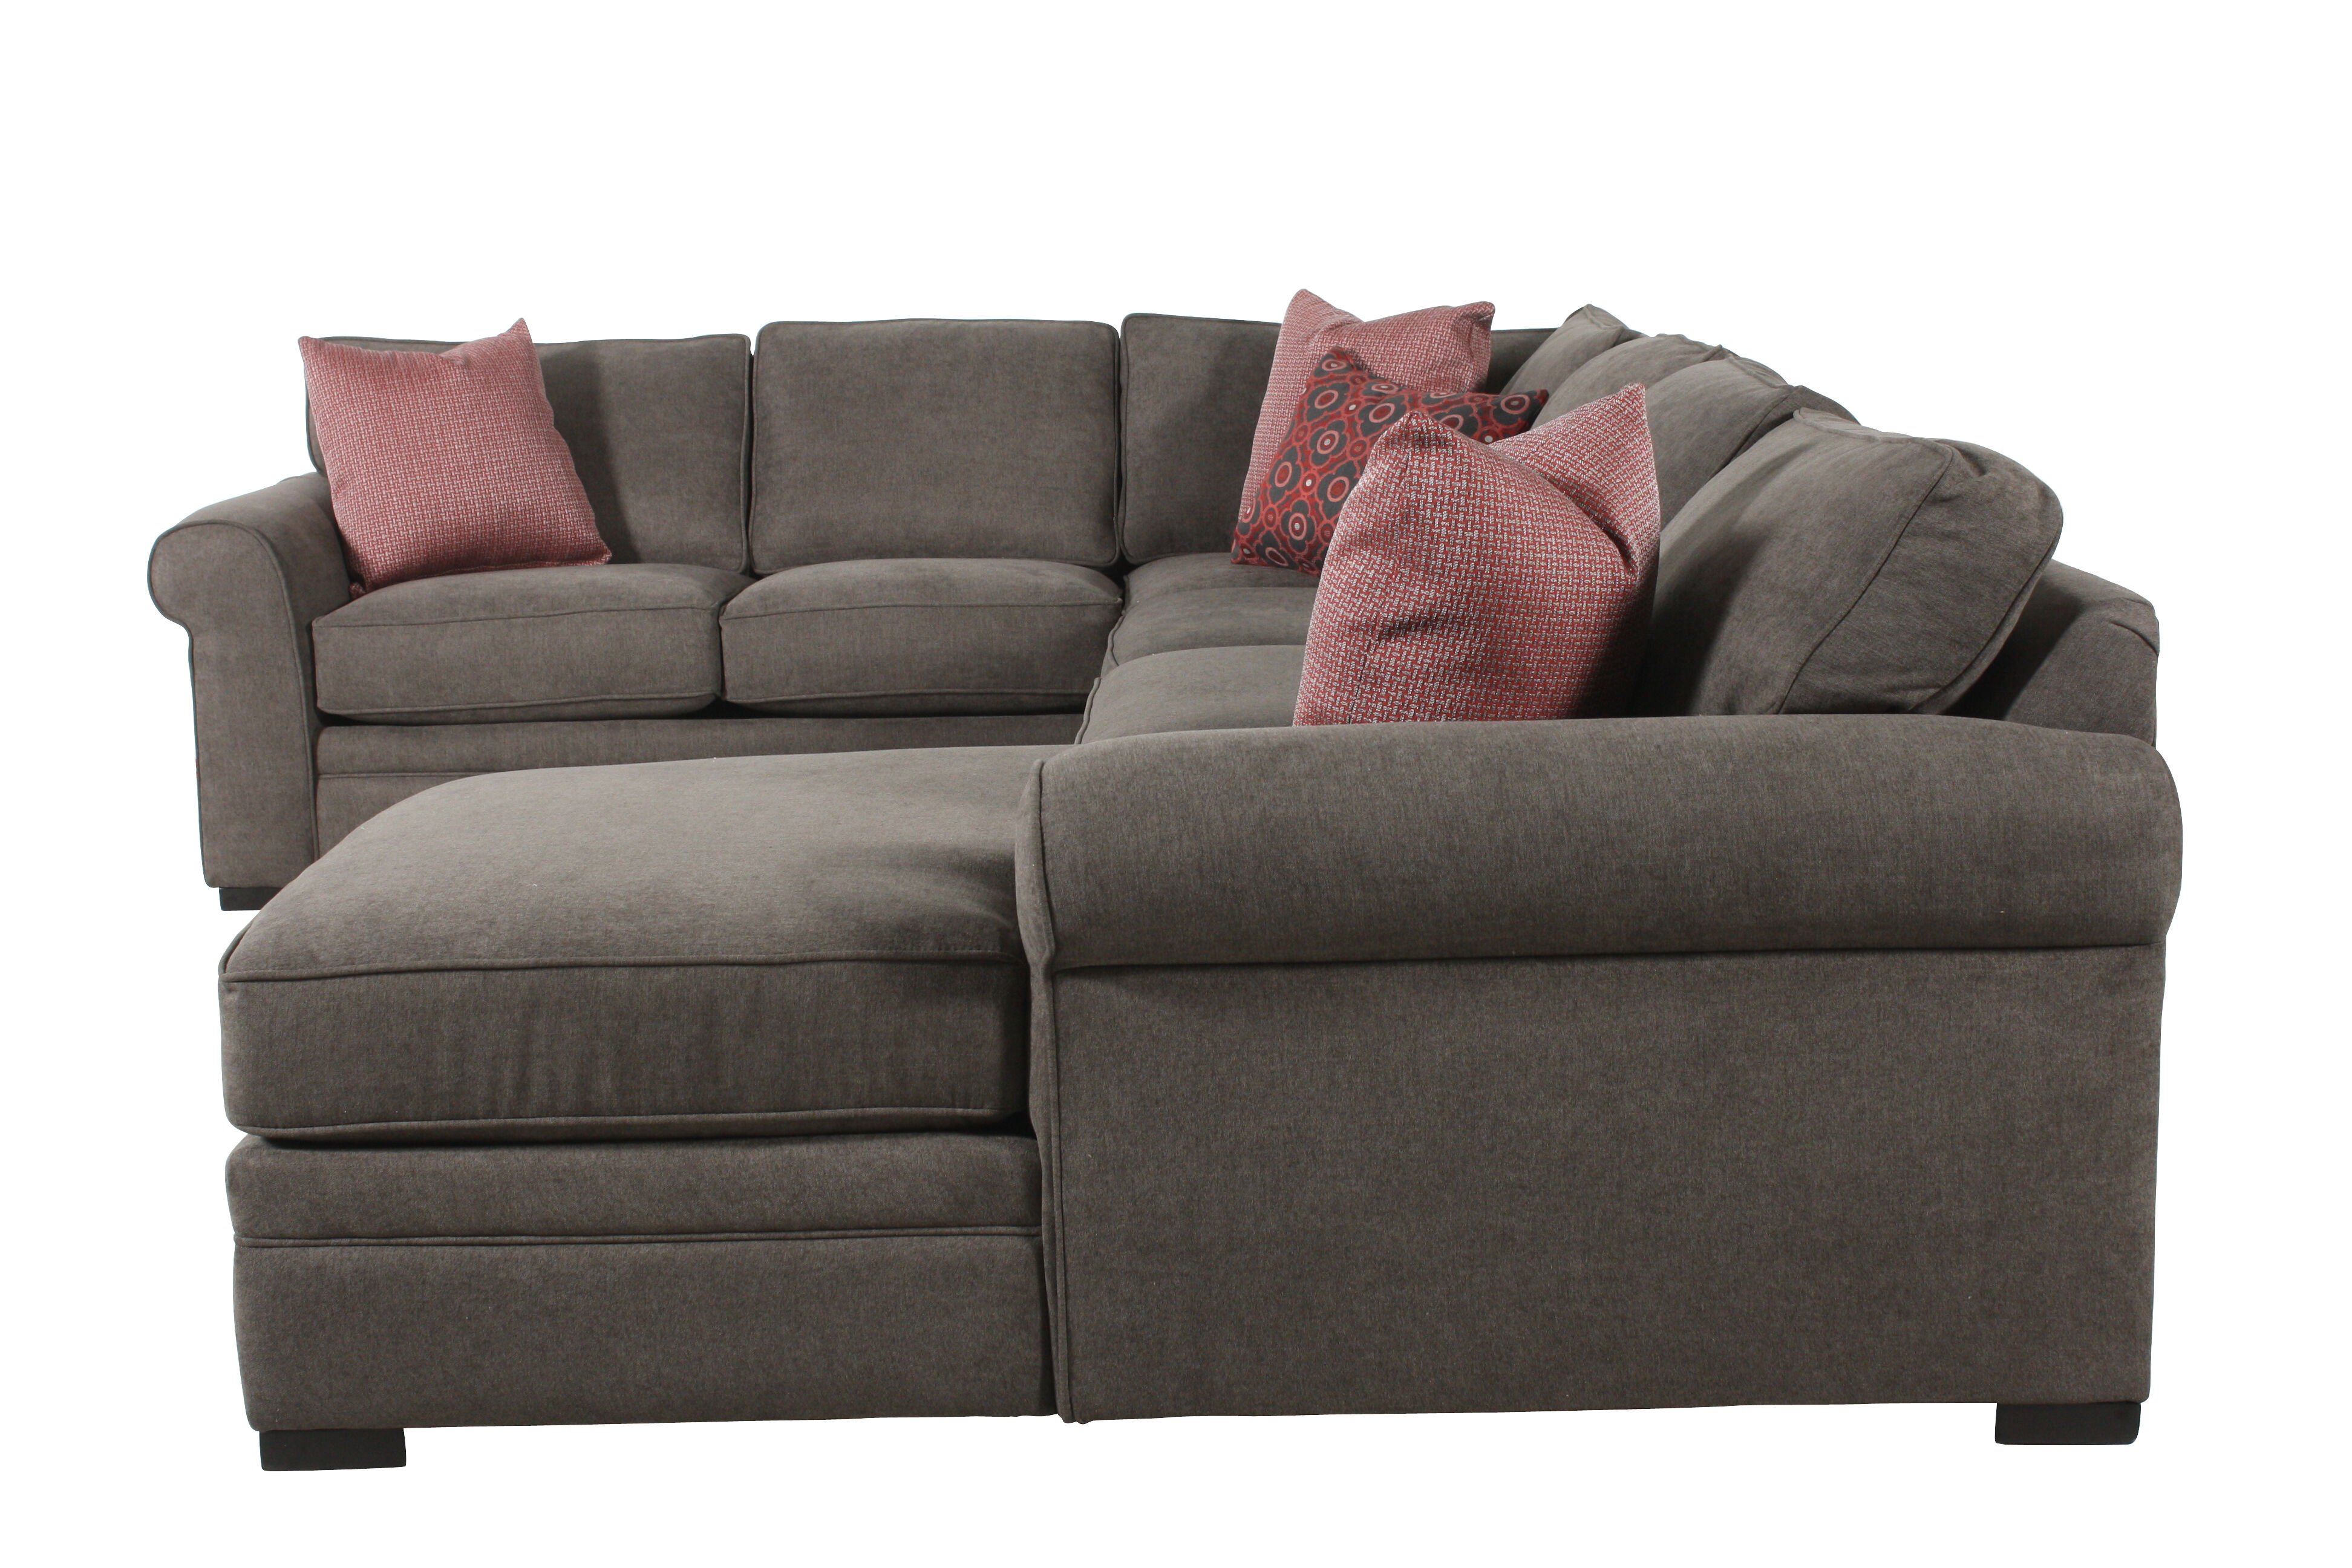 Jonathan Louis Lannister Sectional  sc 1 st  Mathis Brothers : jonathan louis noah sectional - Sectionals, Sofas & Couches